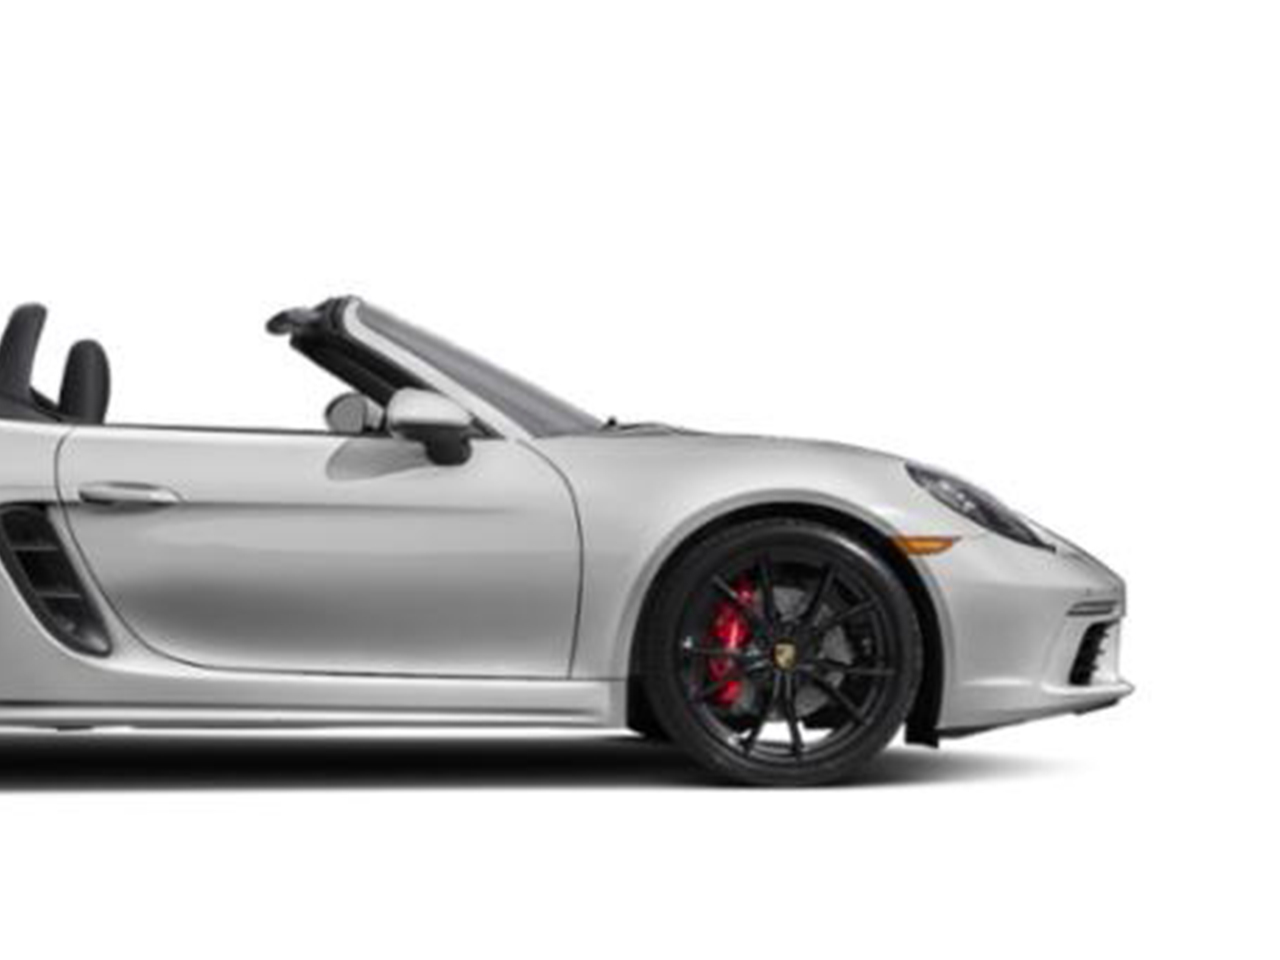 Porsche 718 Boxster car for hire